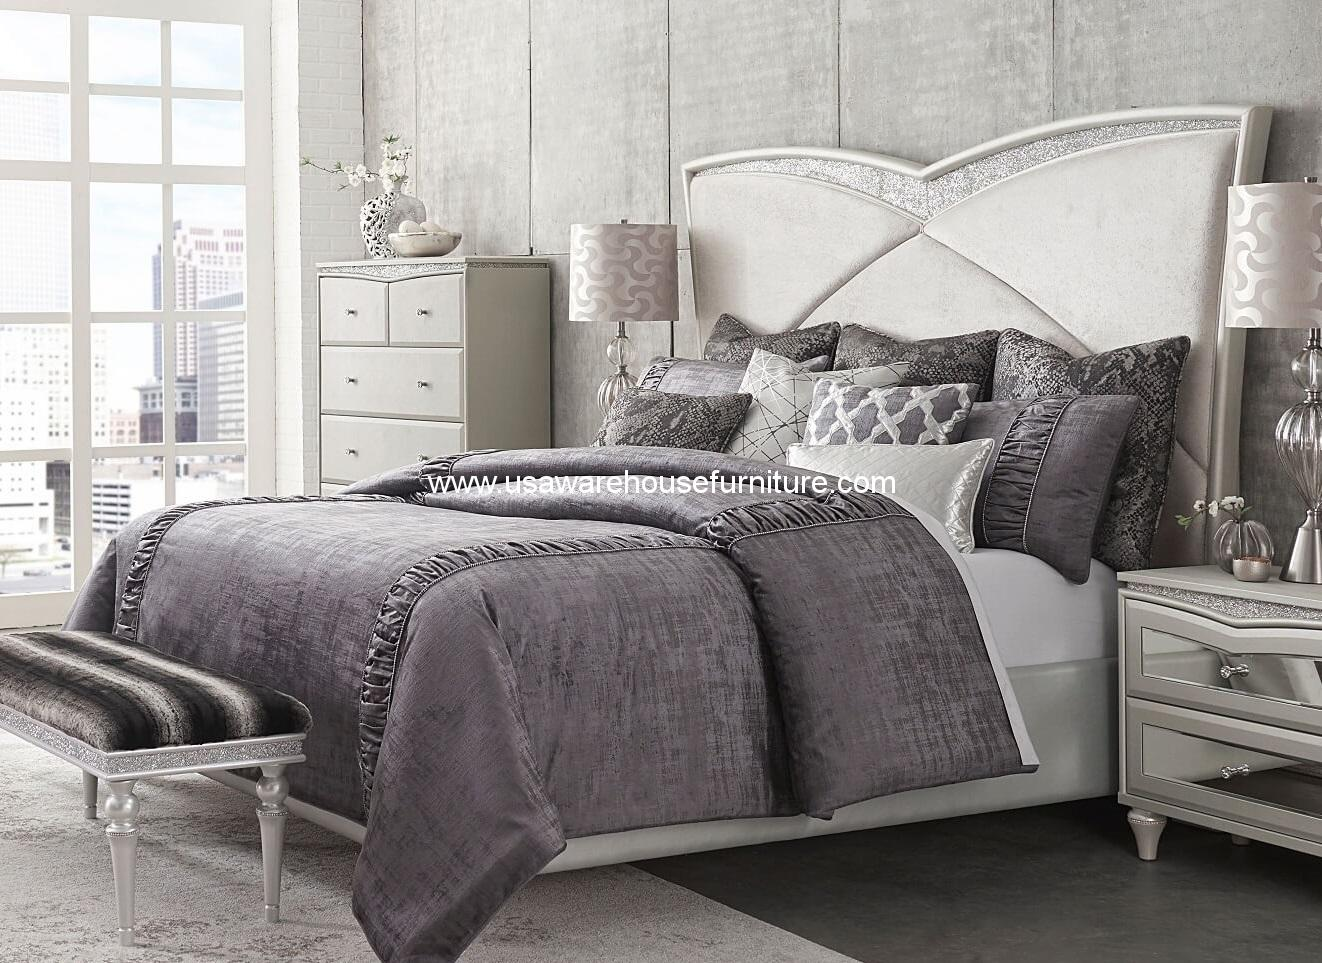 Incroyable Melrose Plaza Upholstered Bed